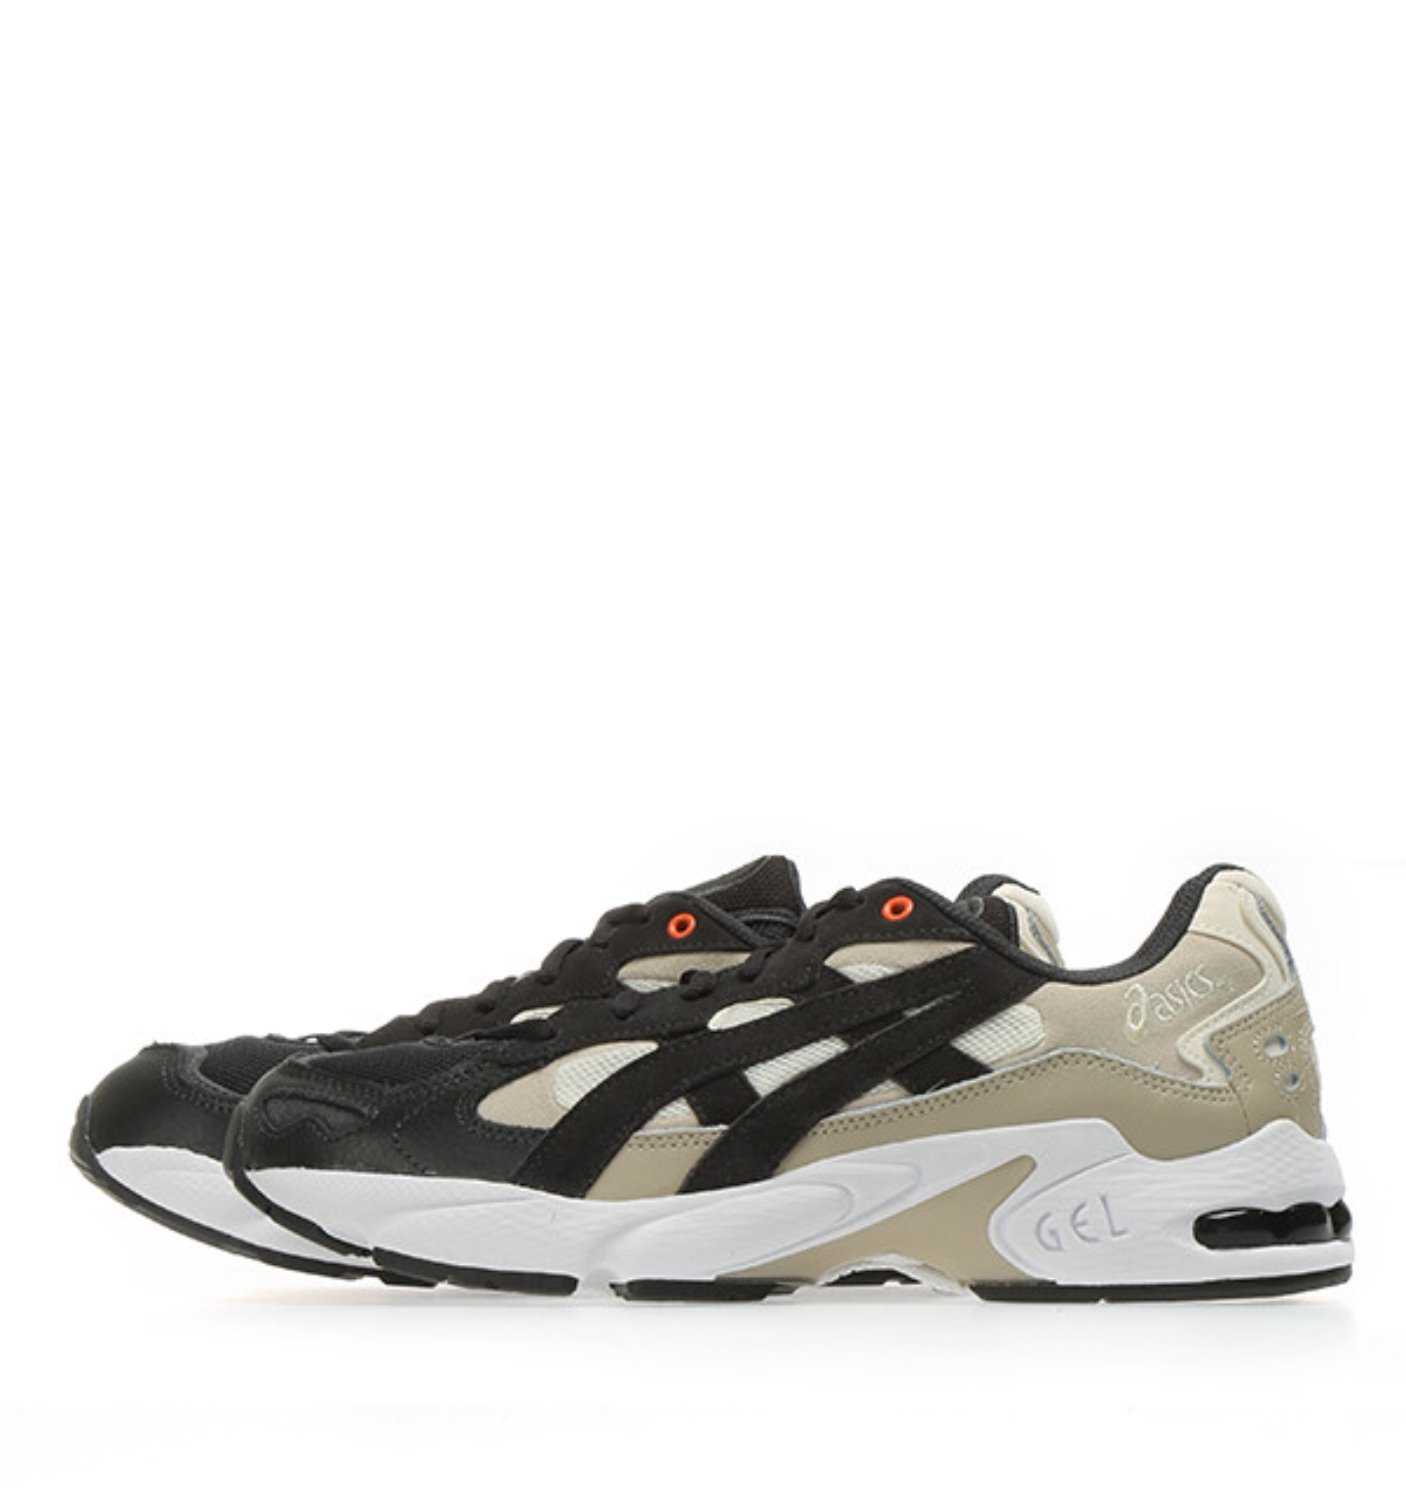 ASICS X REIGNING CHAMP GEL KAYANO 5 OG CHARCOAL/CREAM